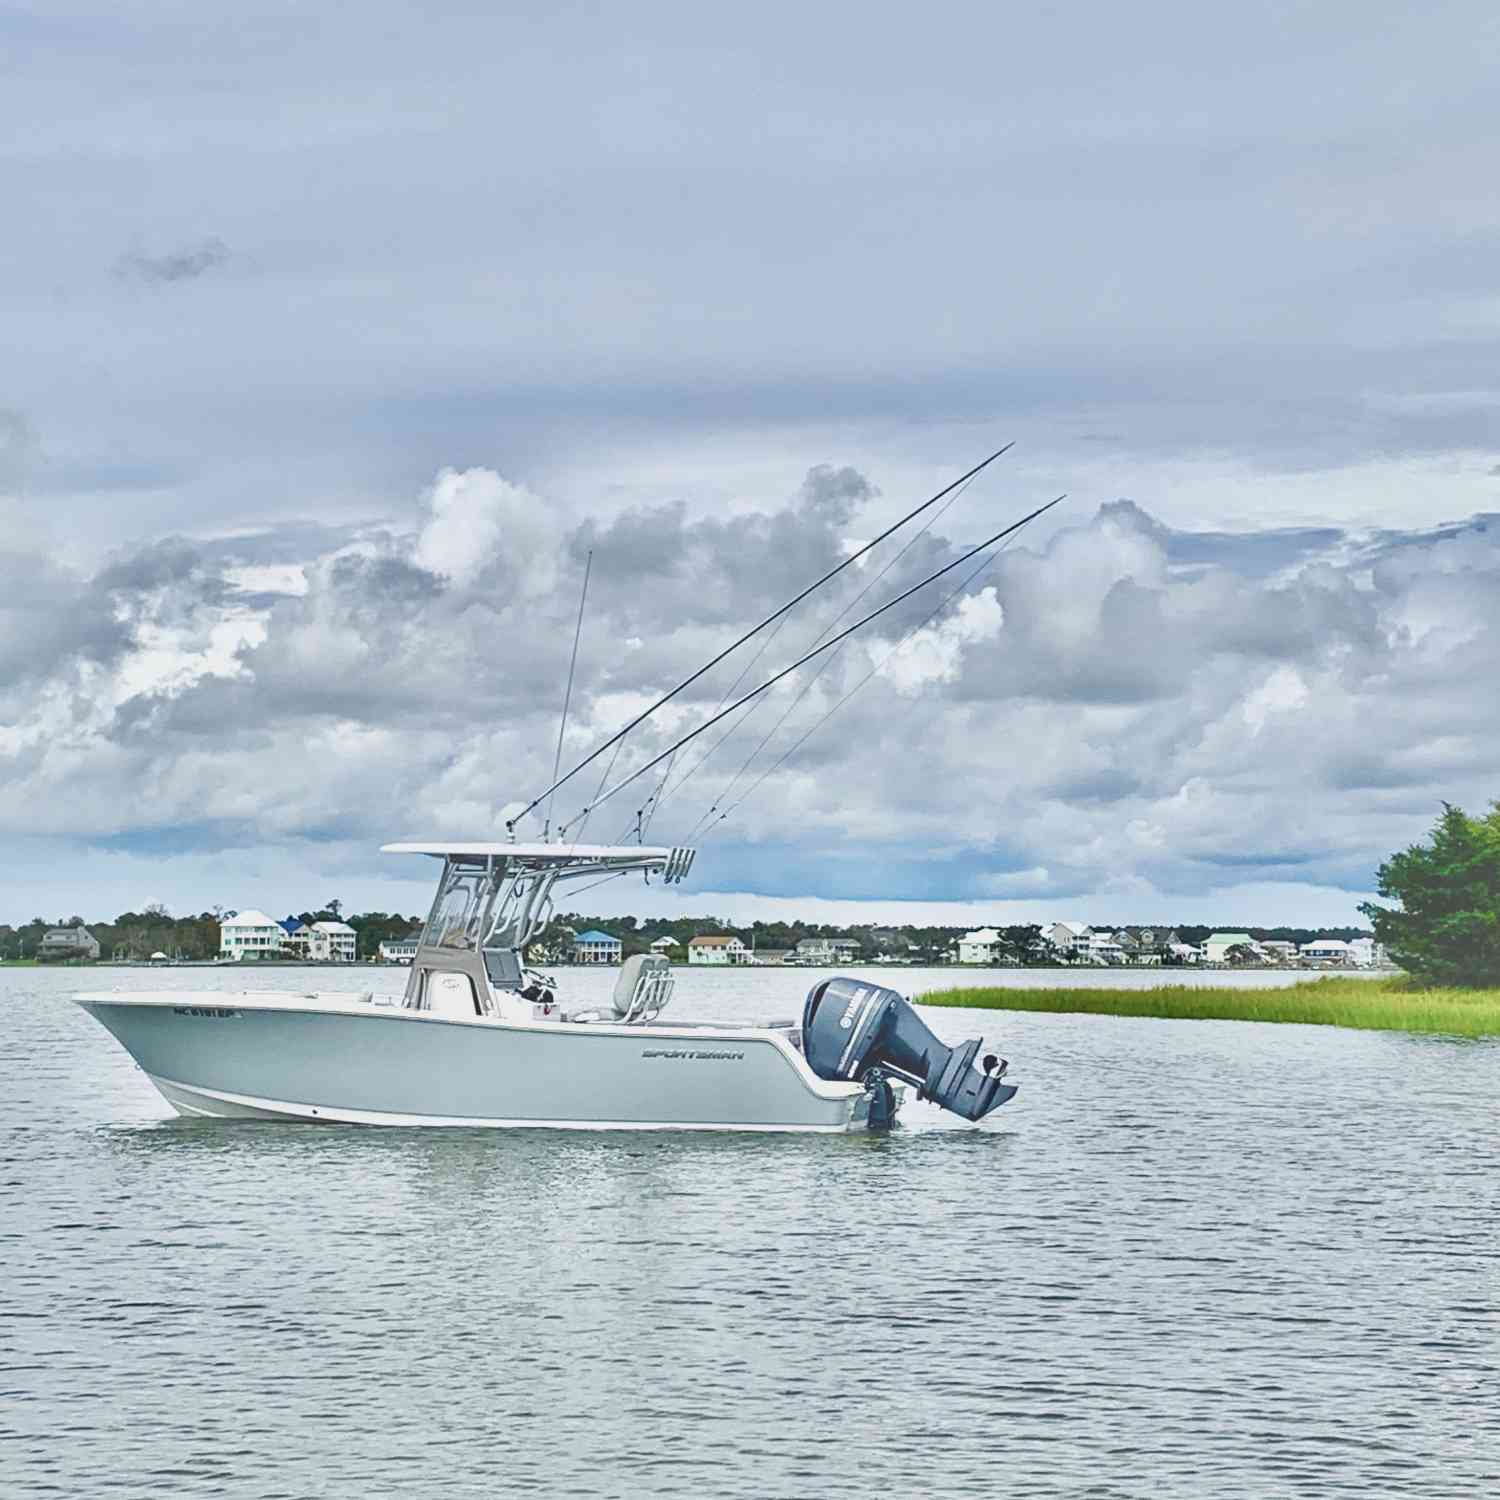 Title: Just Relaxing - On board their Sportsman Open 242 Center Console - Location: Emerald Isle NC. Participating in the Photo Contest #SportsmanMay2021